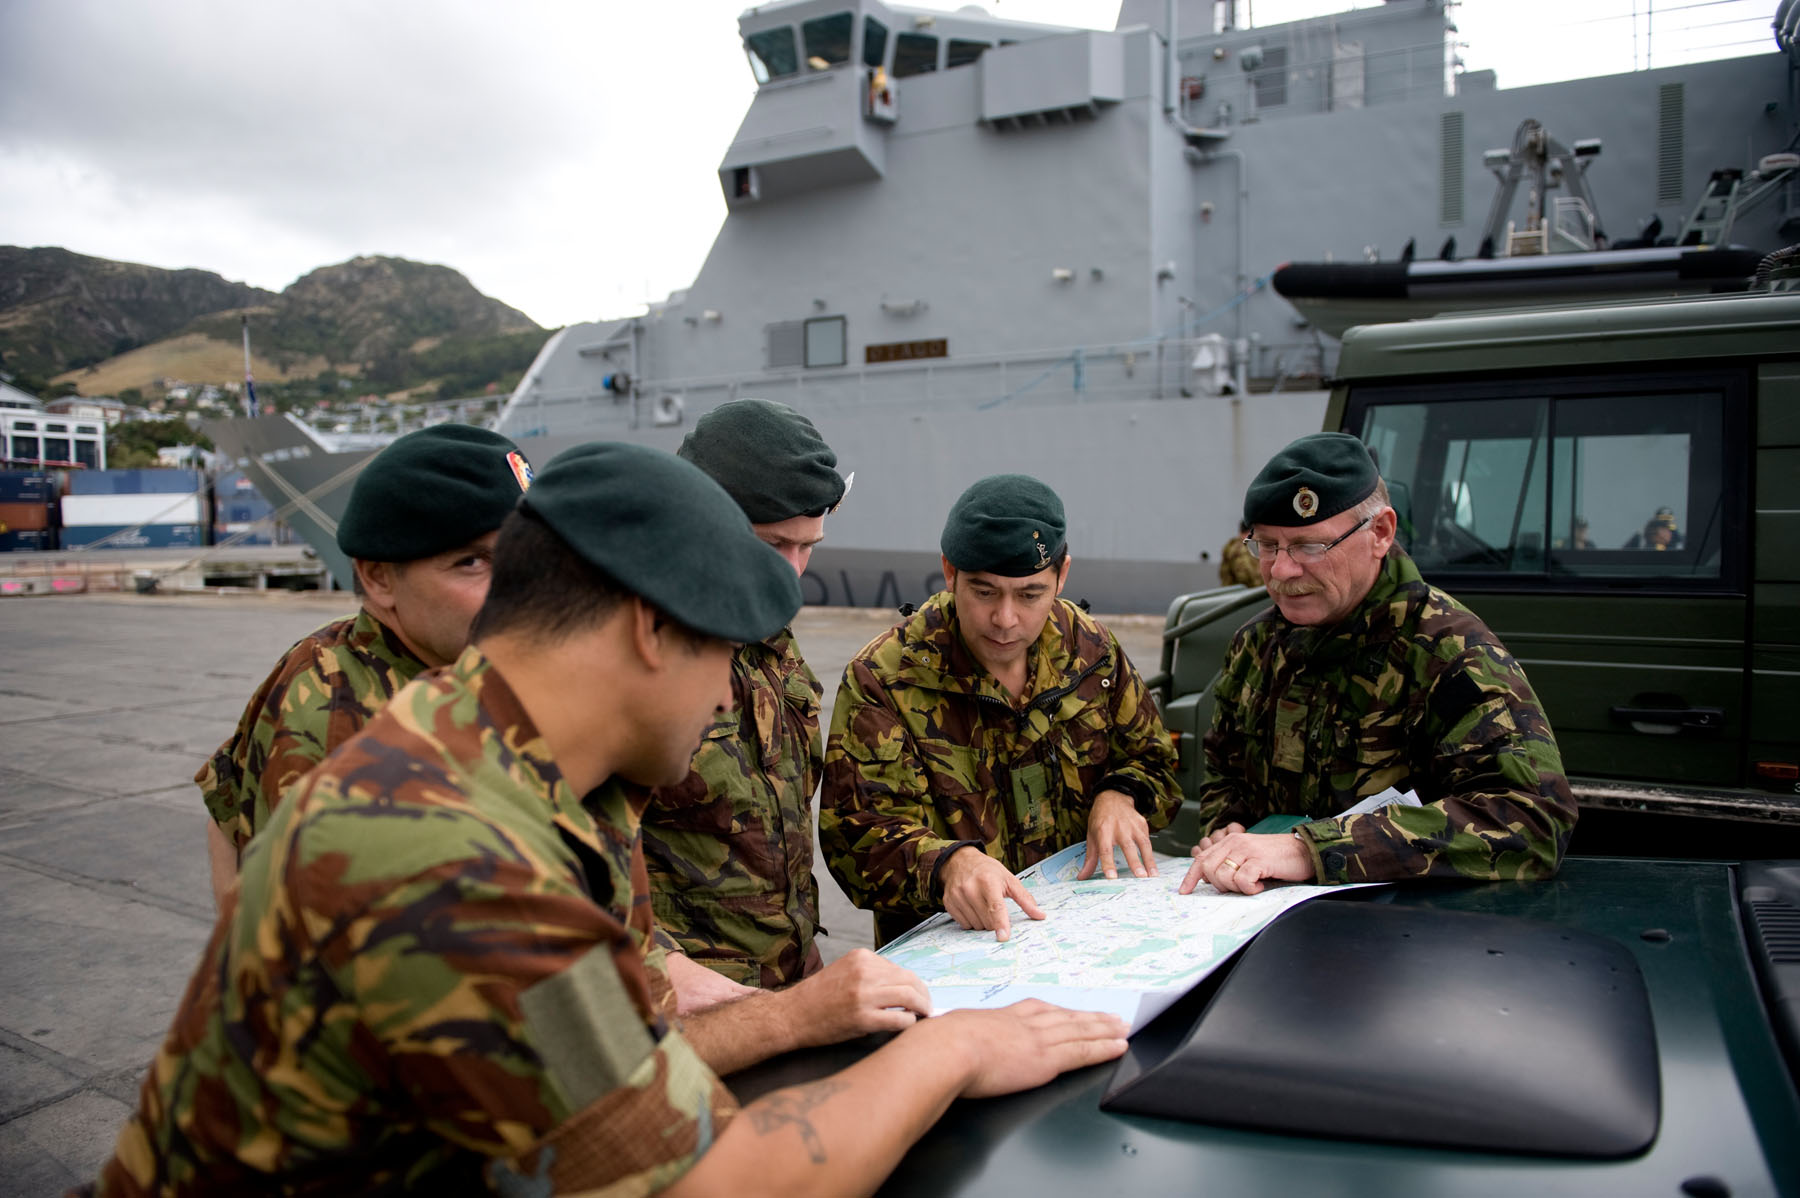 Military dating in nz